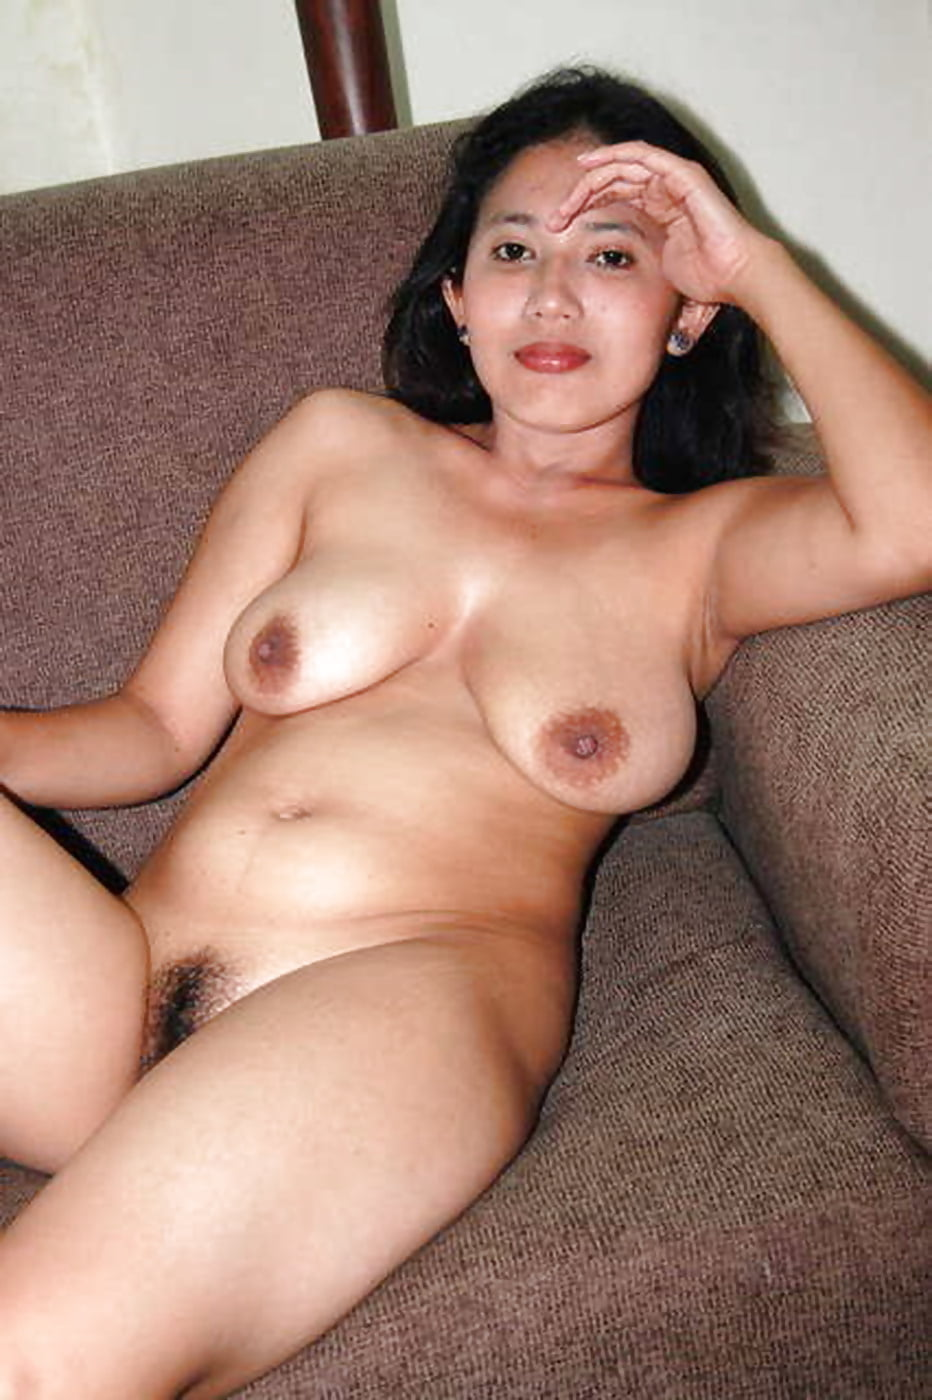 Chinese Nude Gf Exposed